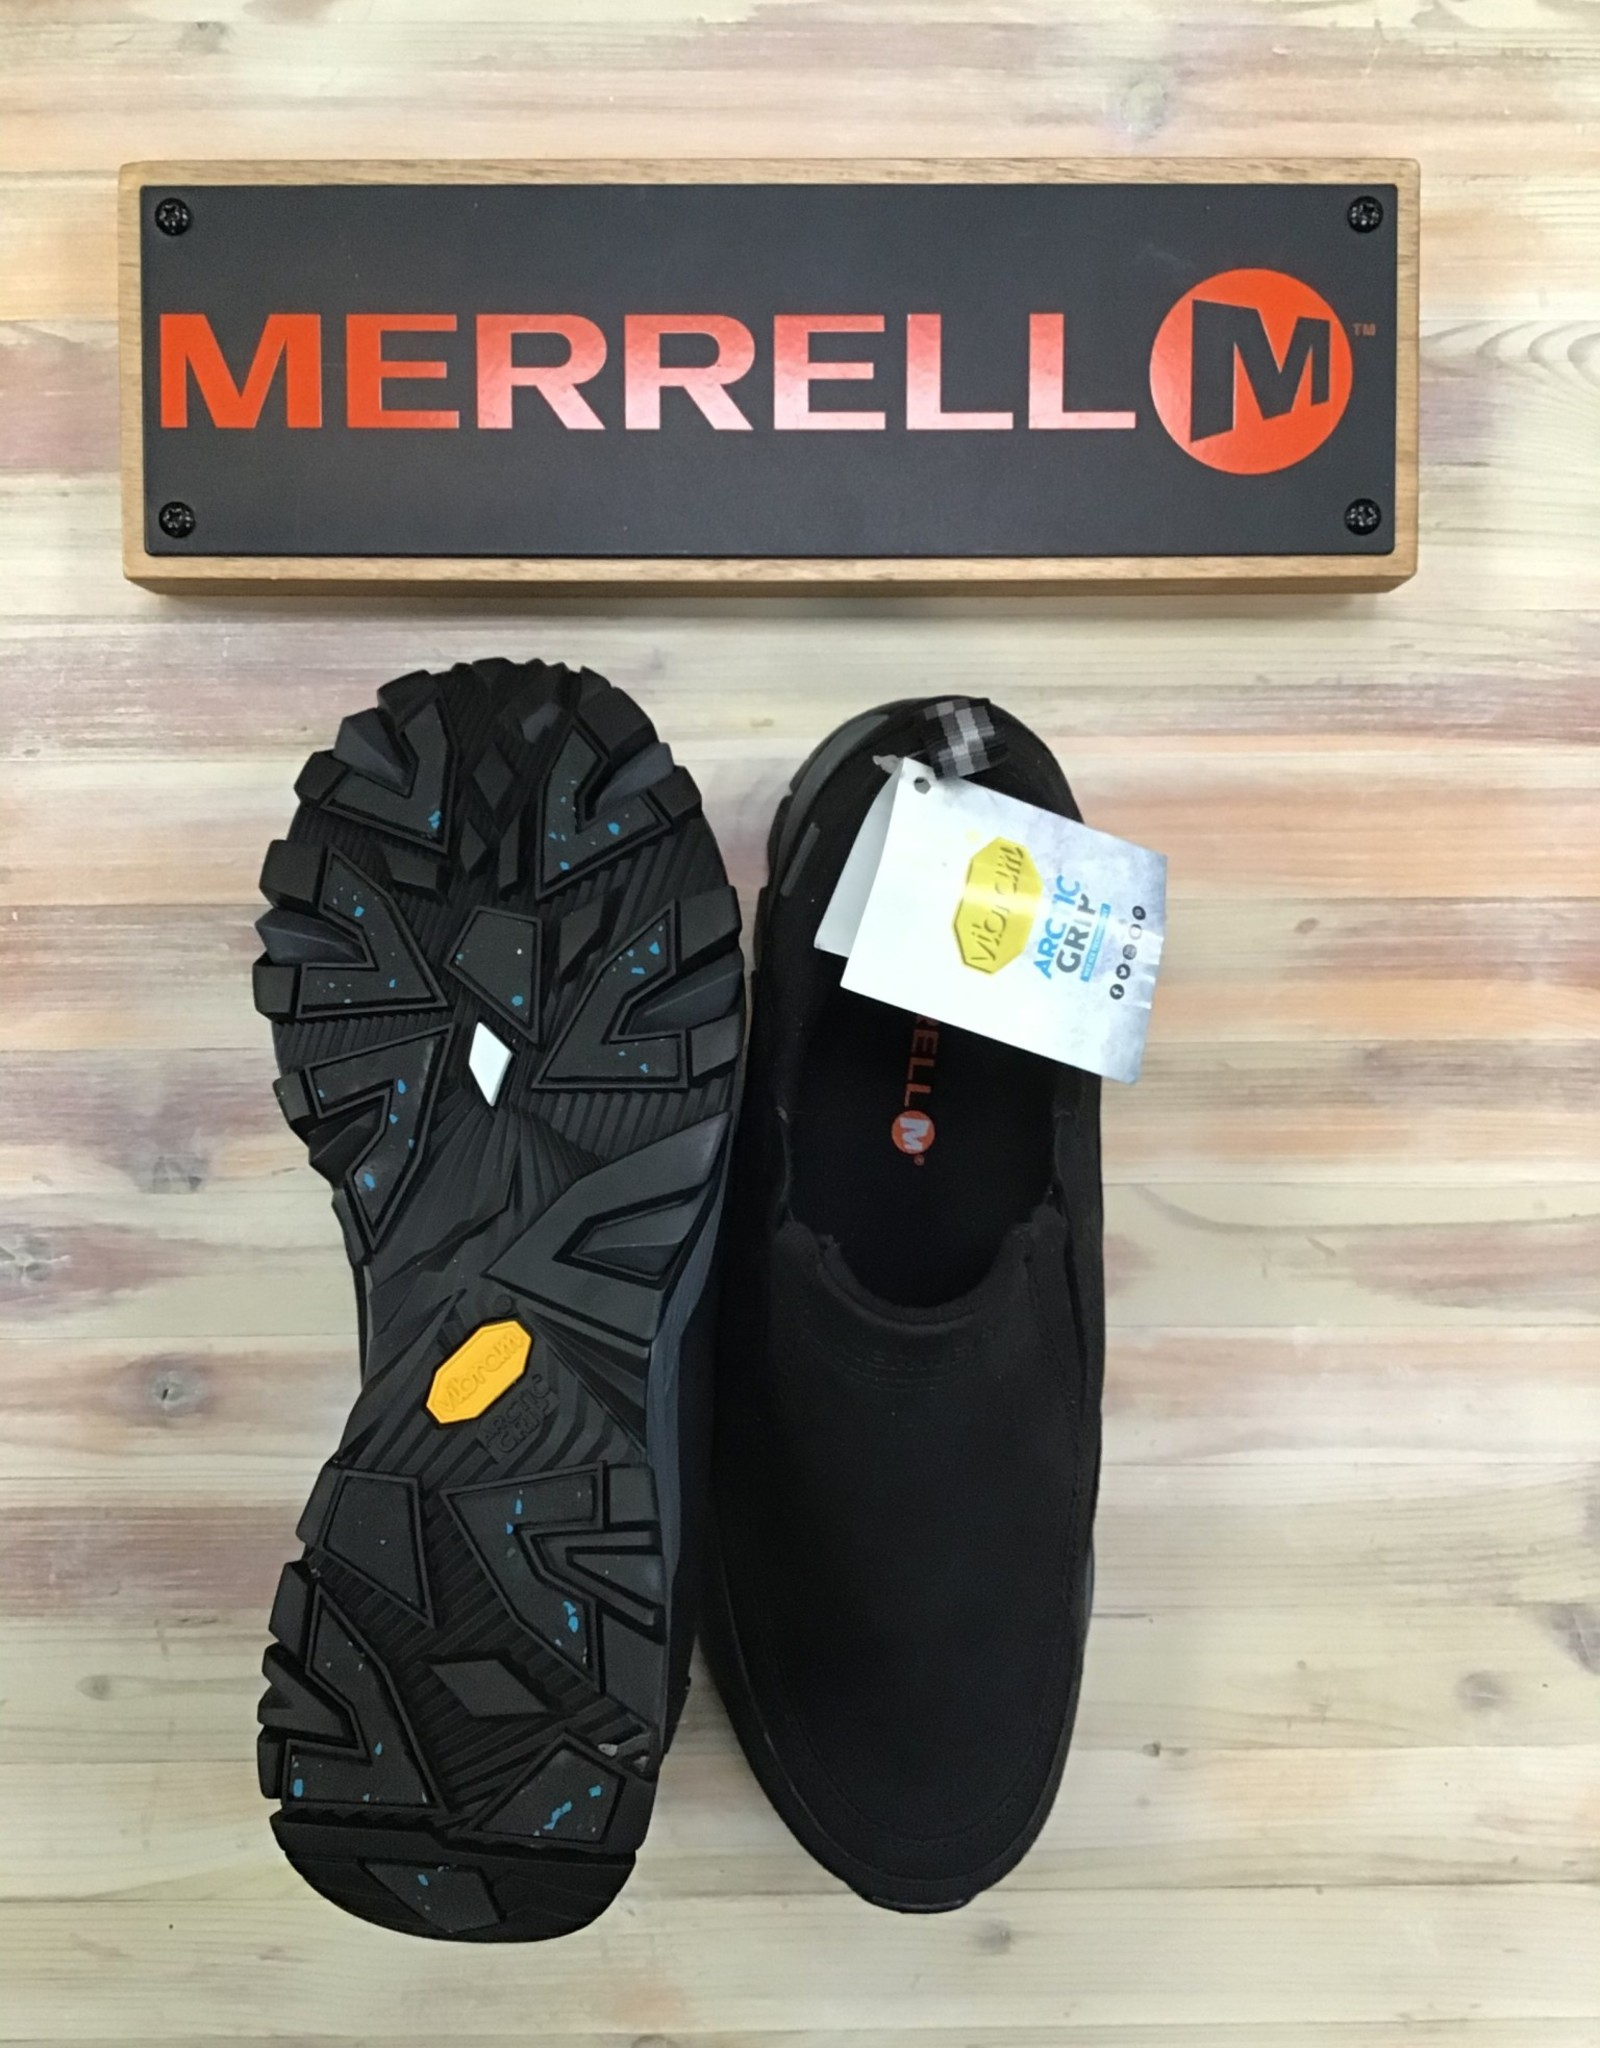 Merrell Merrell Coldpack Ice+ Moc WP Men's